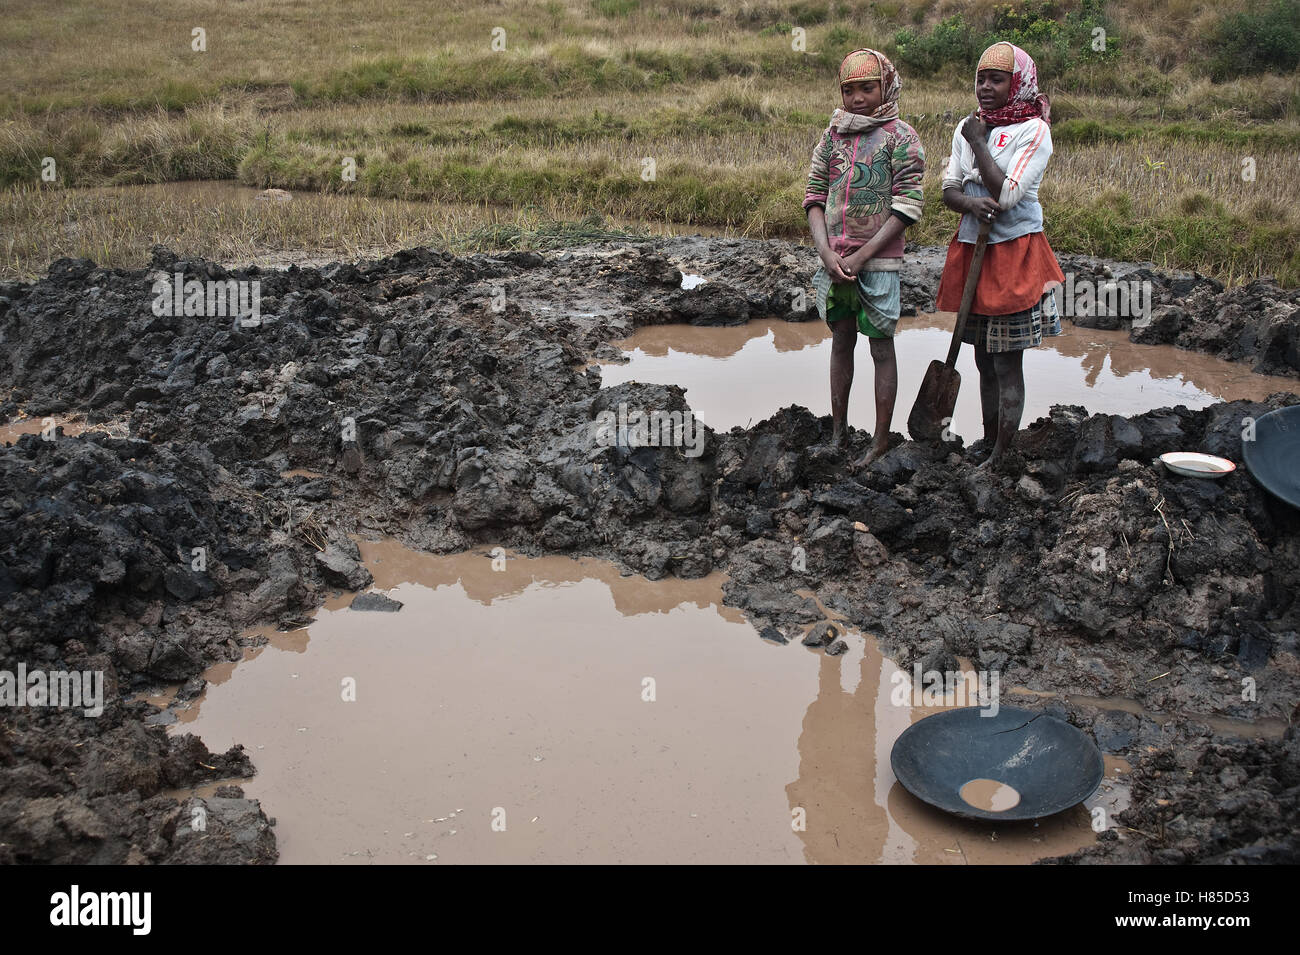 Two girls working as gold diggers. In the foreground, a abandoned pit full of water ( Madagascar) - Stock Image